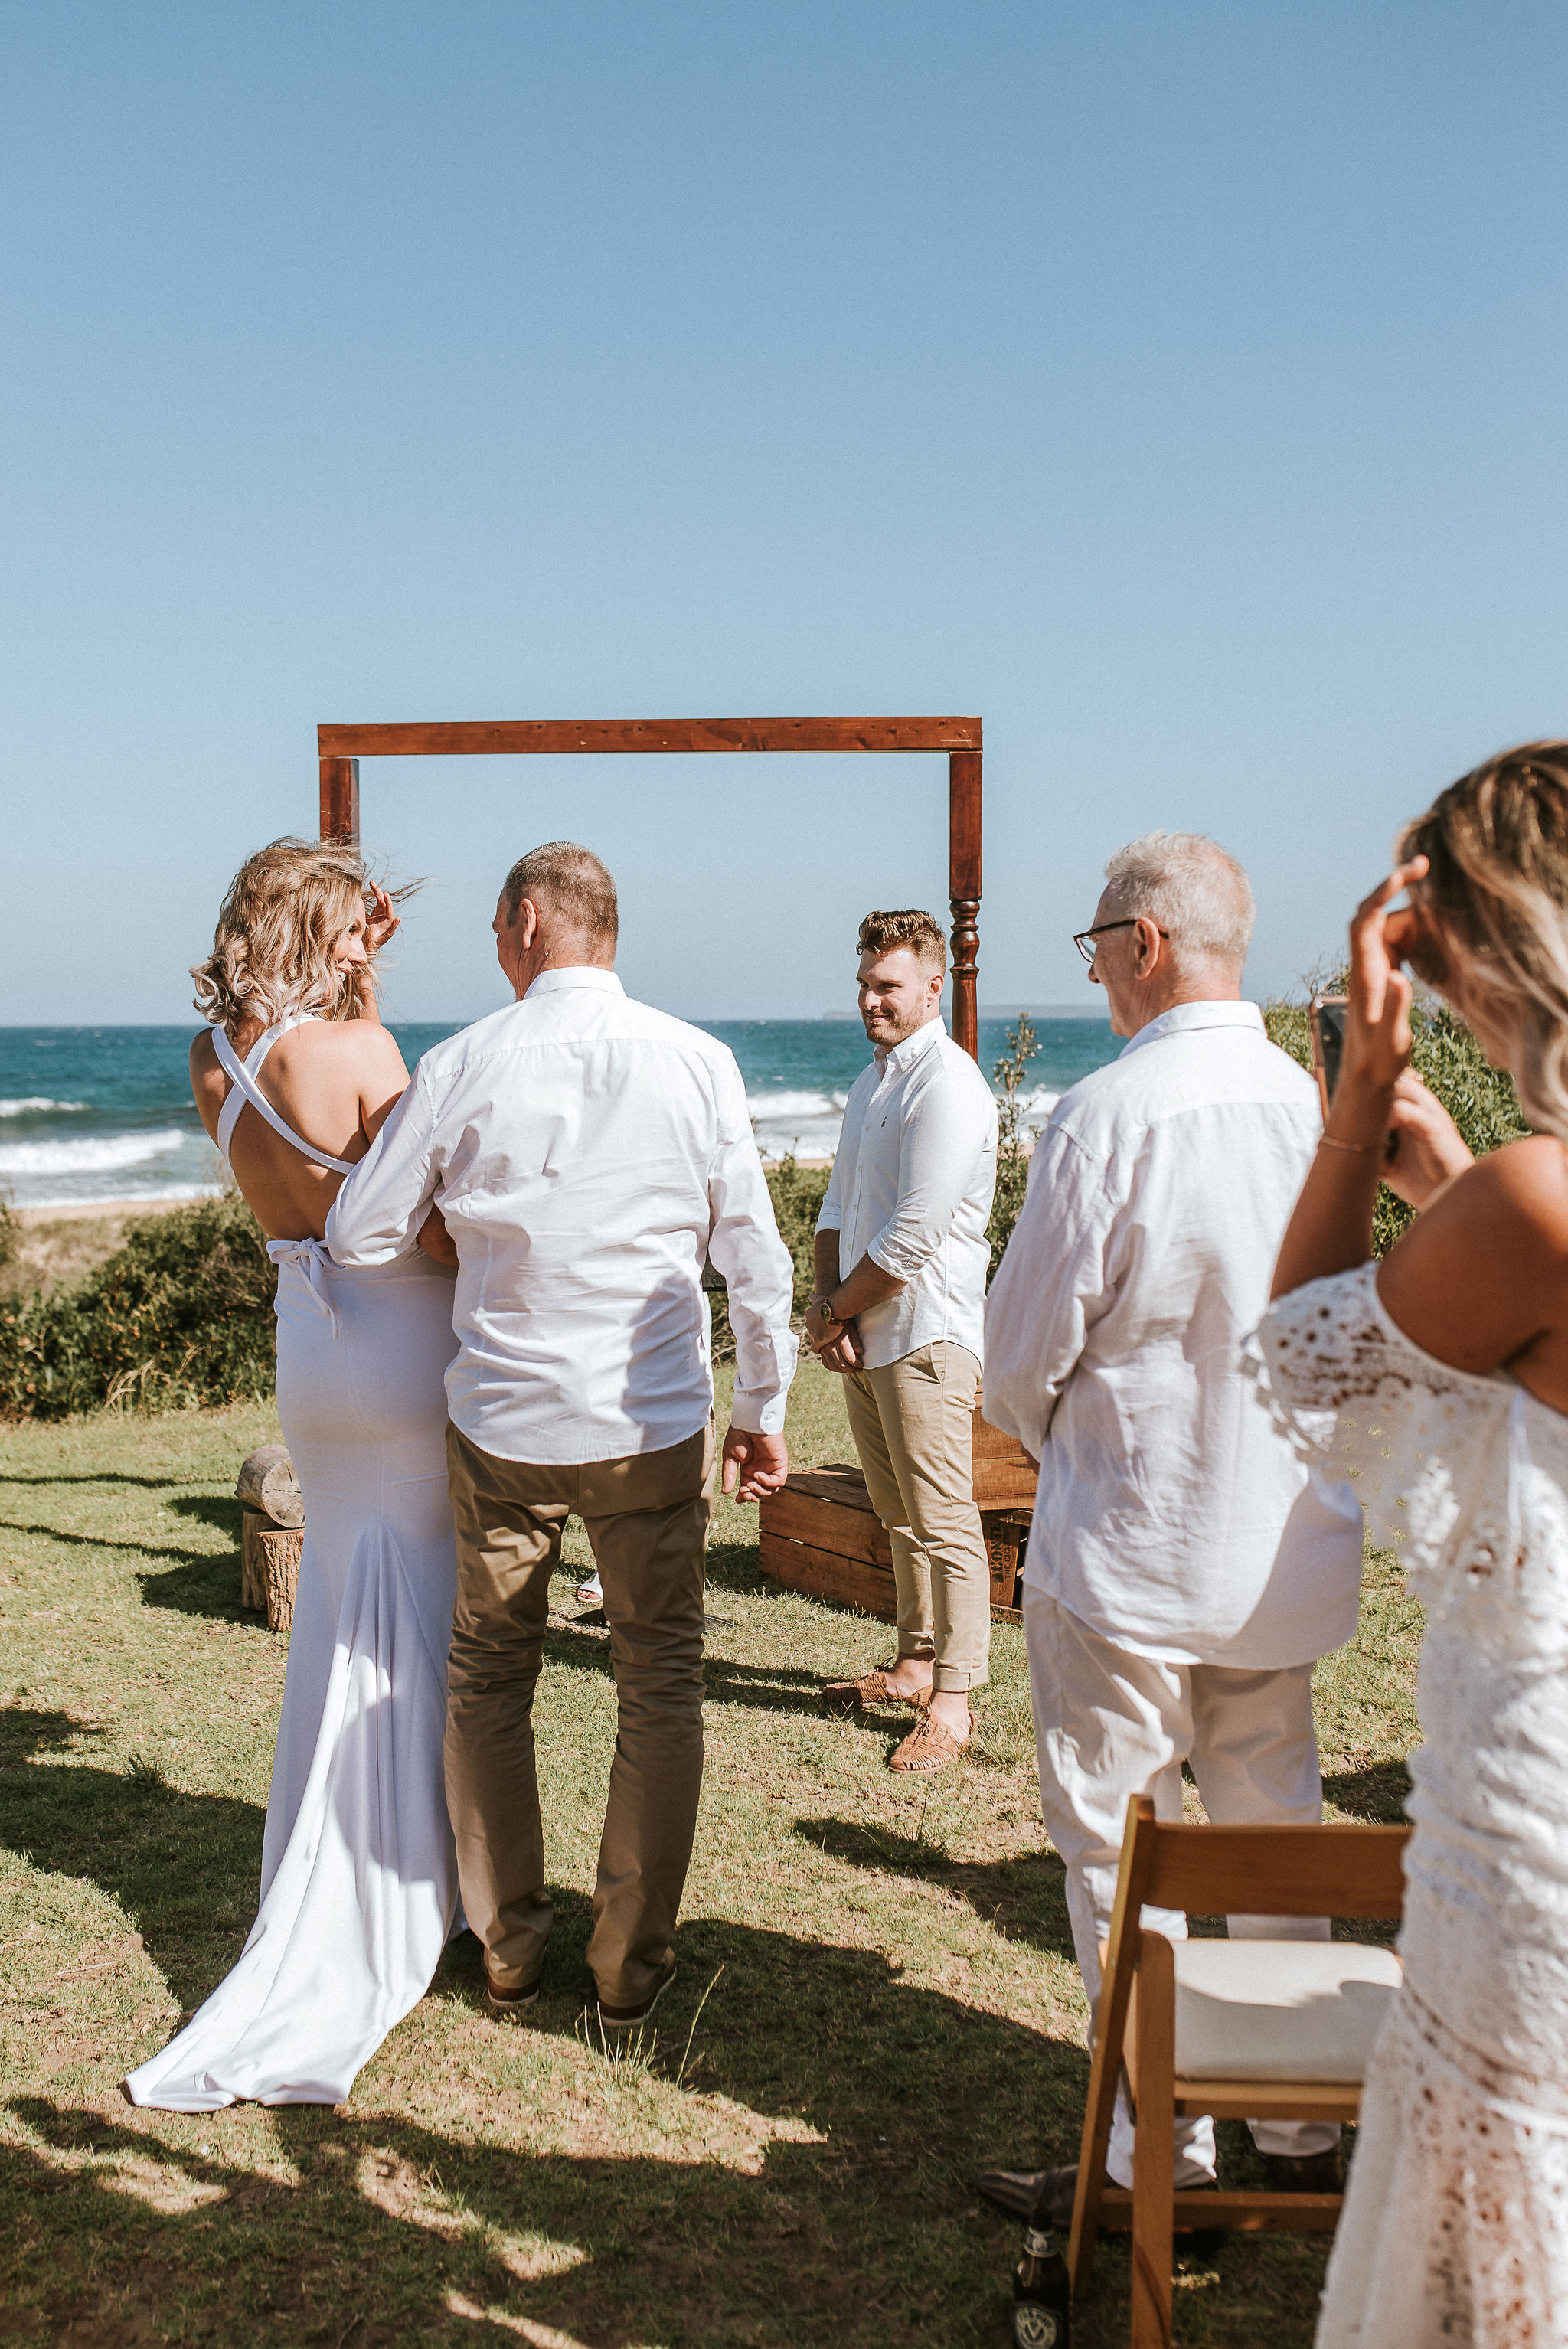 CULBURRA-BEACH-WEDDING-HEFFERNAN-PREVIEW-20.jpg